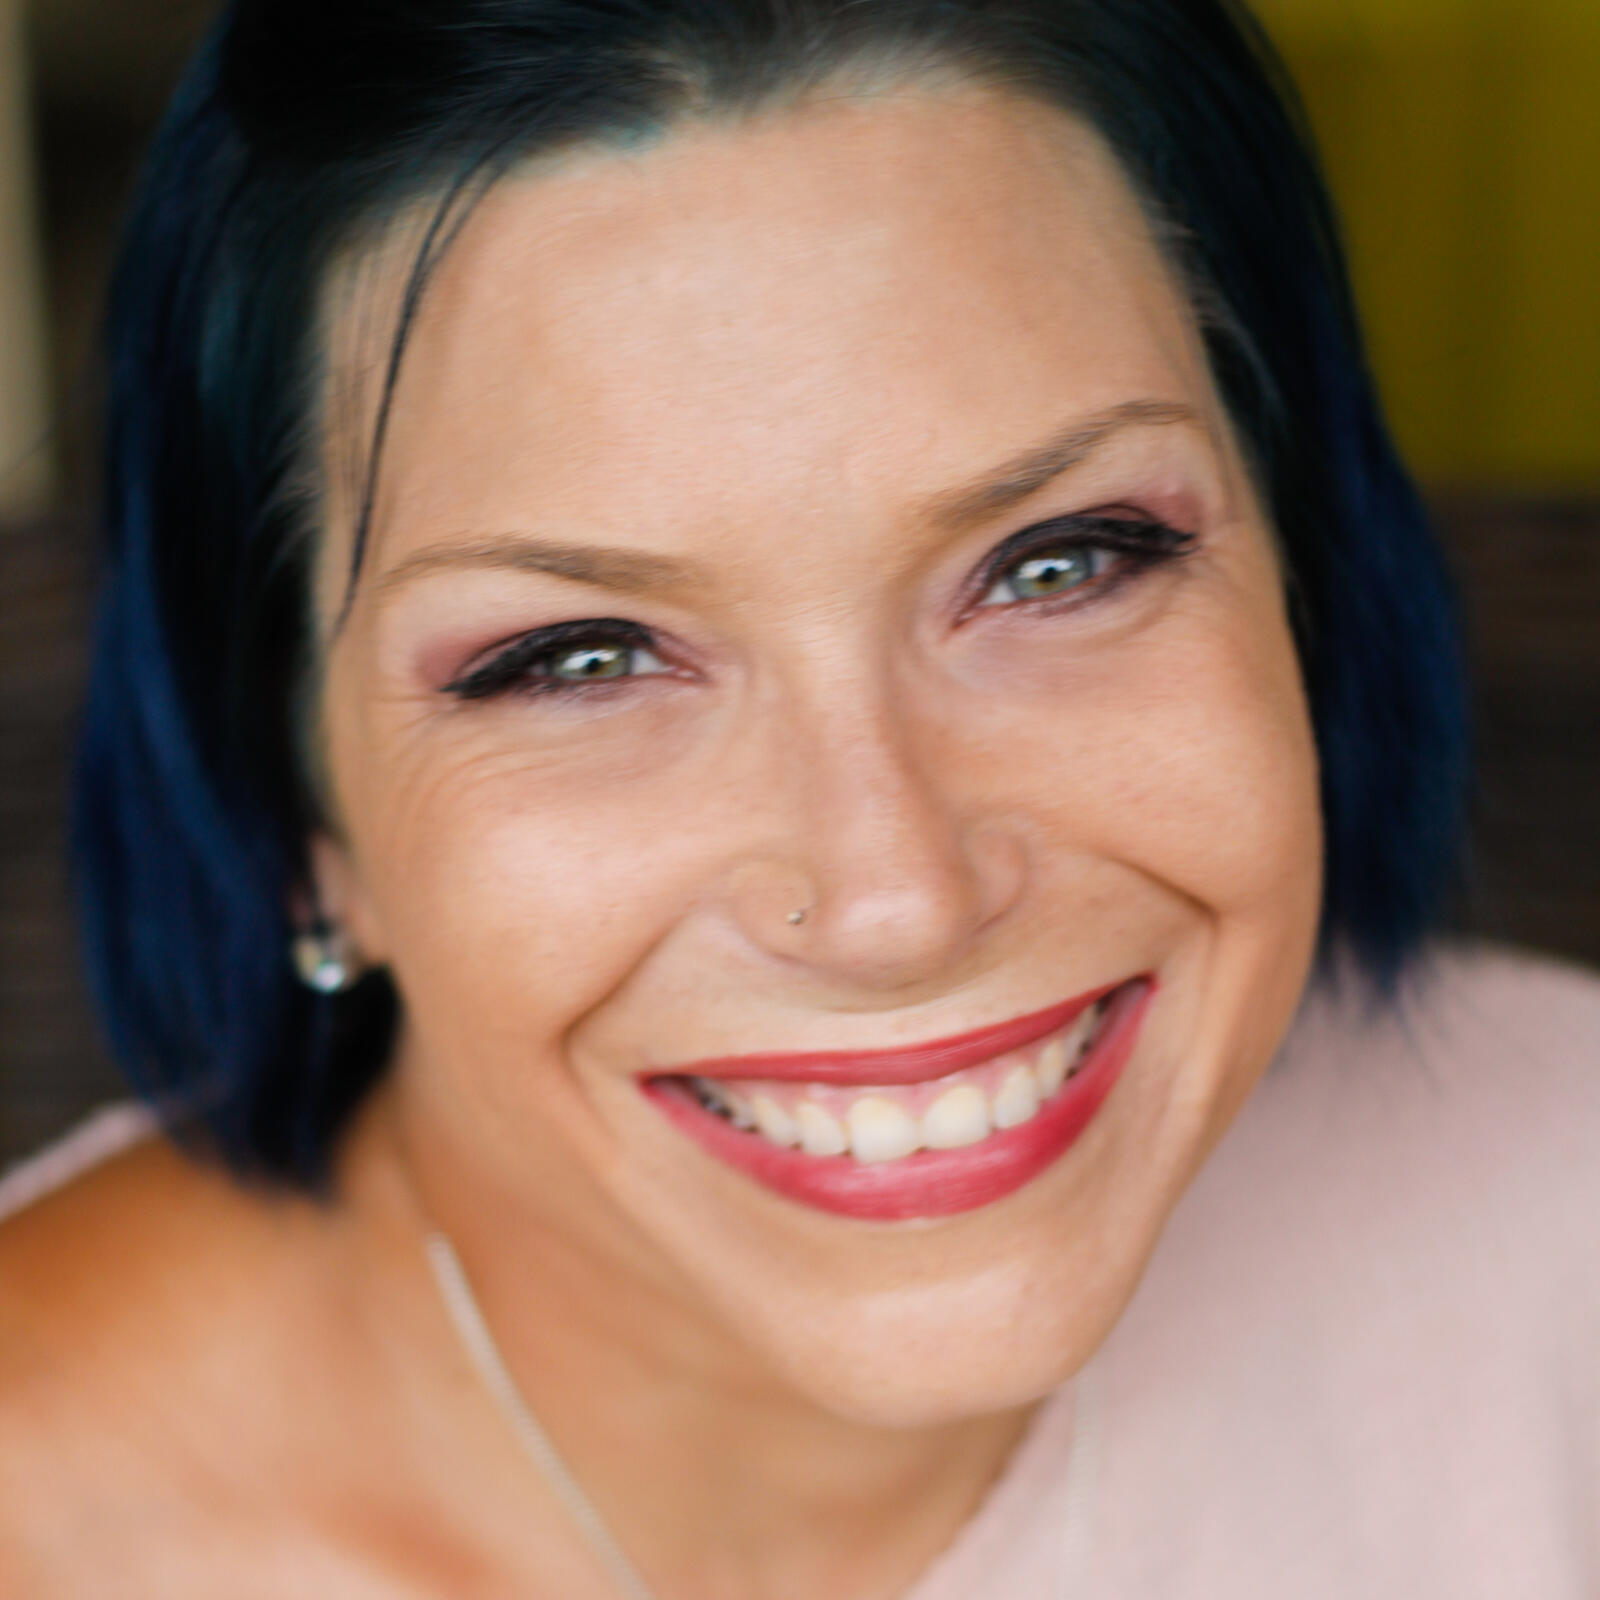 Headshot of woman smiling. She has blue hair.